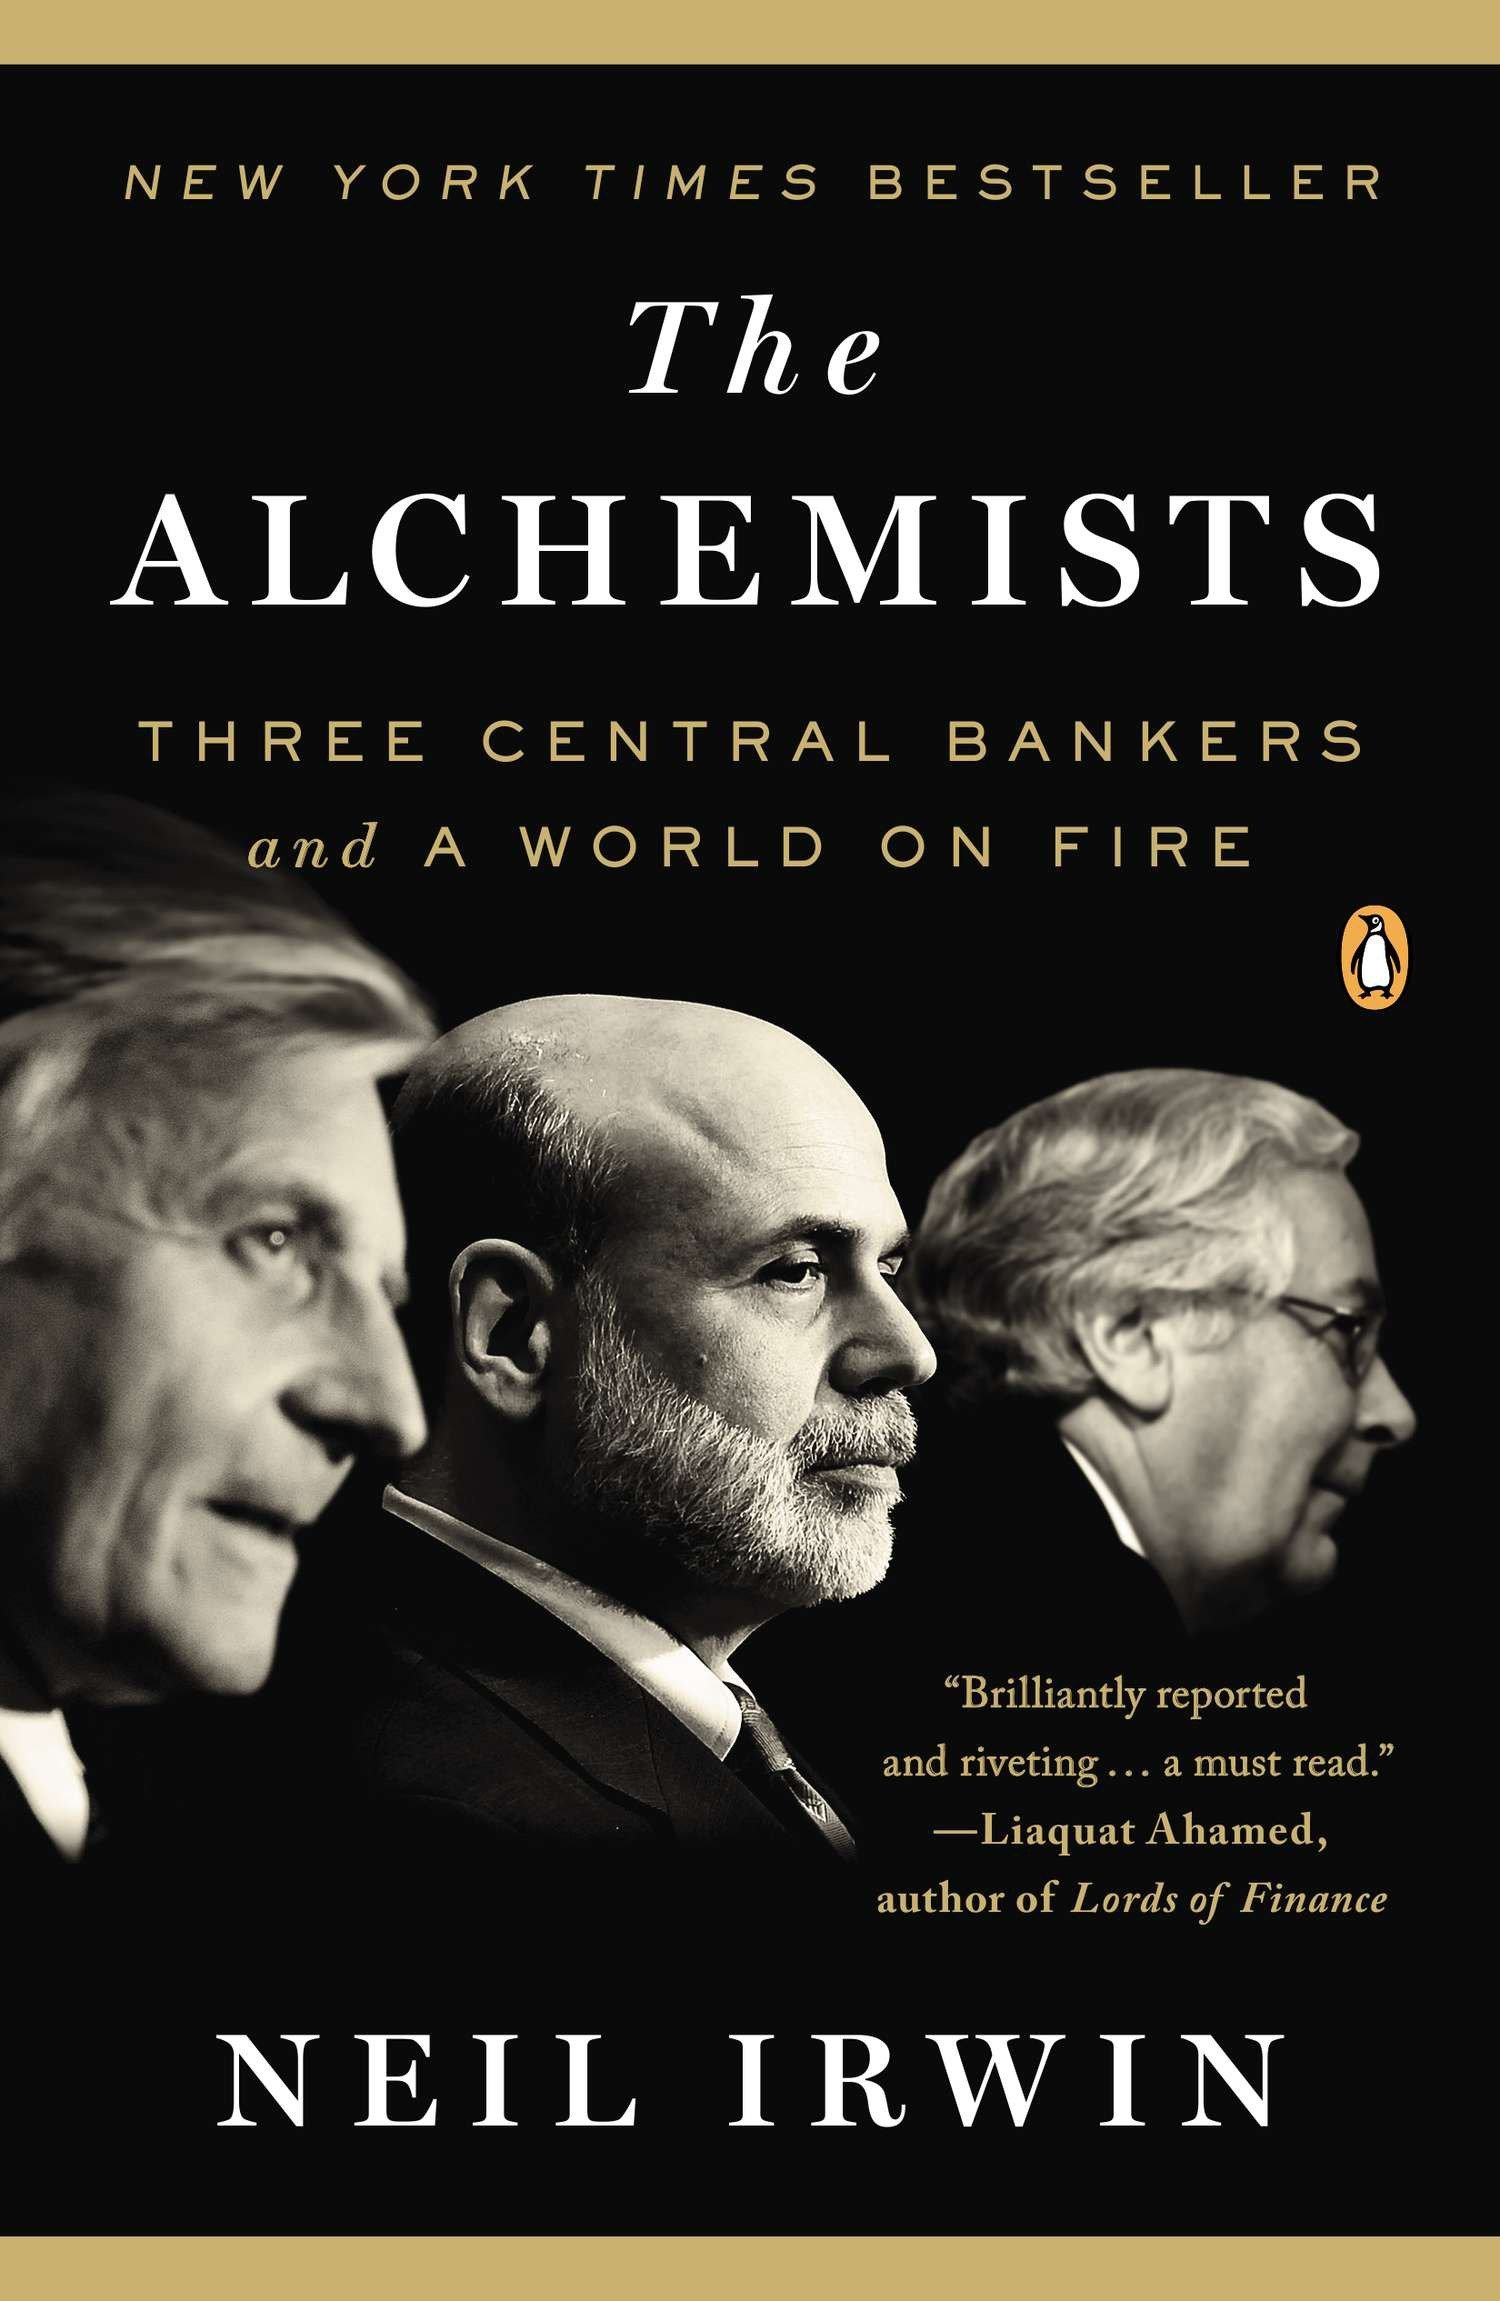 Image result for The Alchemists: Three Central Bankers and a World On Fire - Neil Irwin